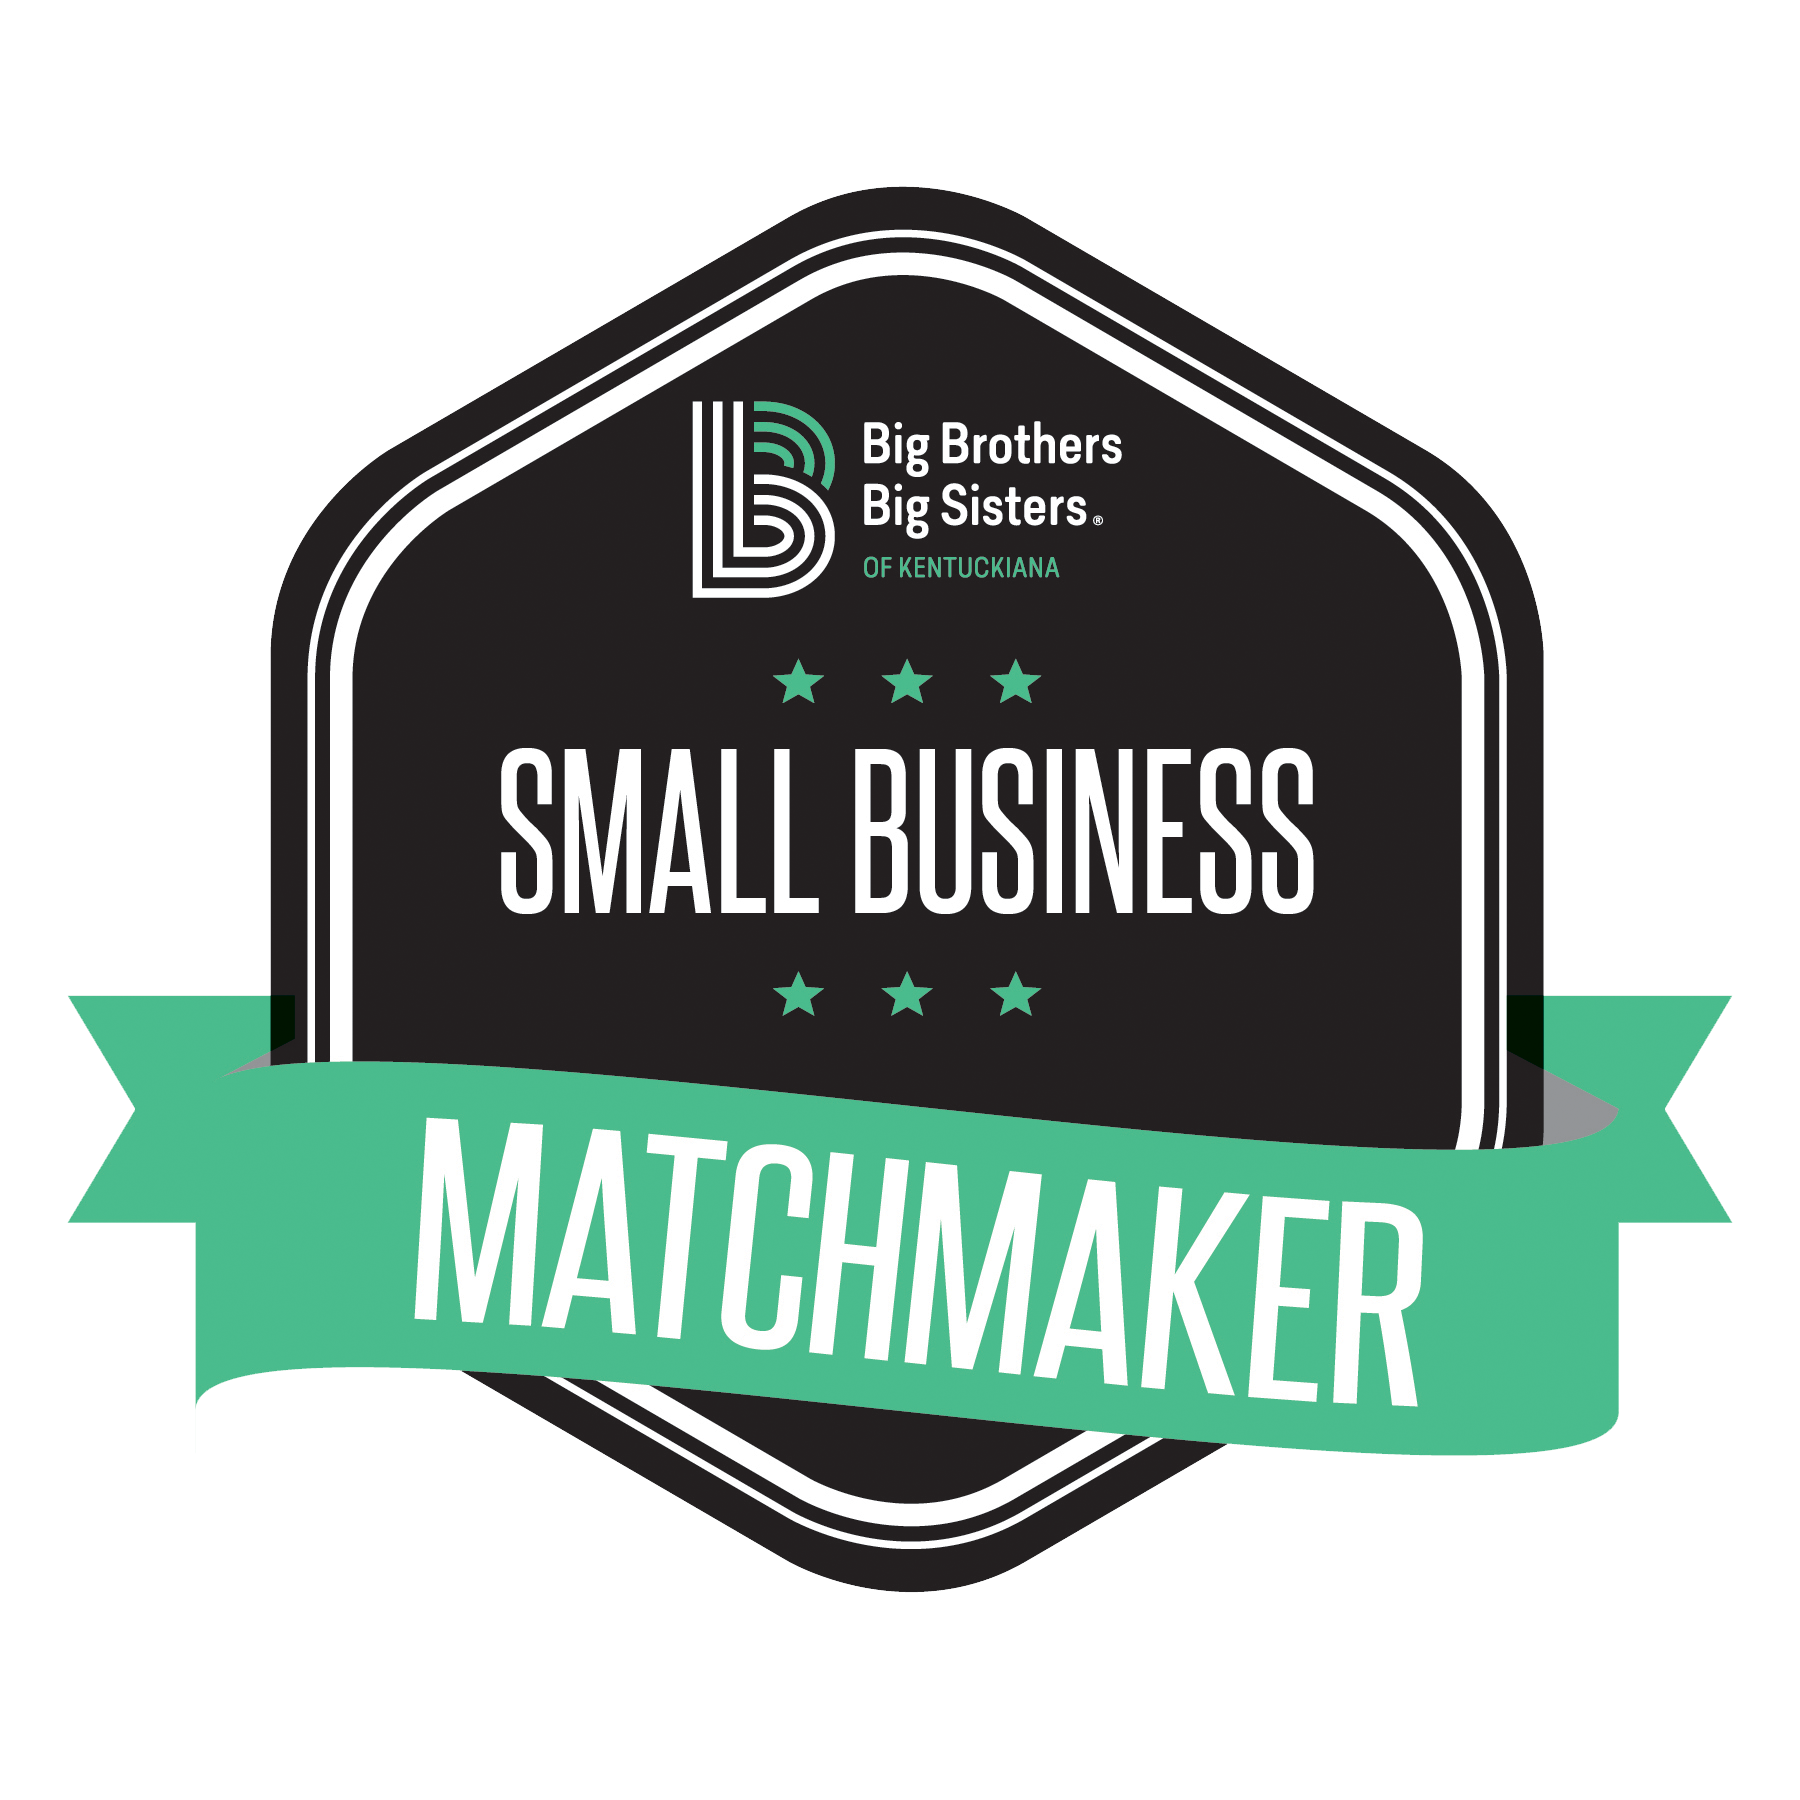 Big Brothers Big Sisters Small business Match Maker Badge